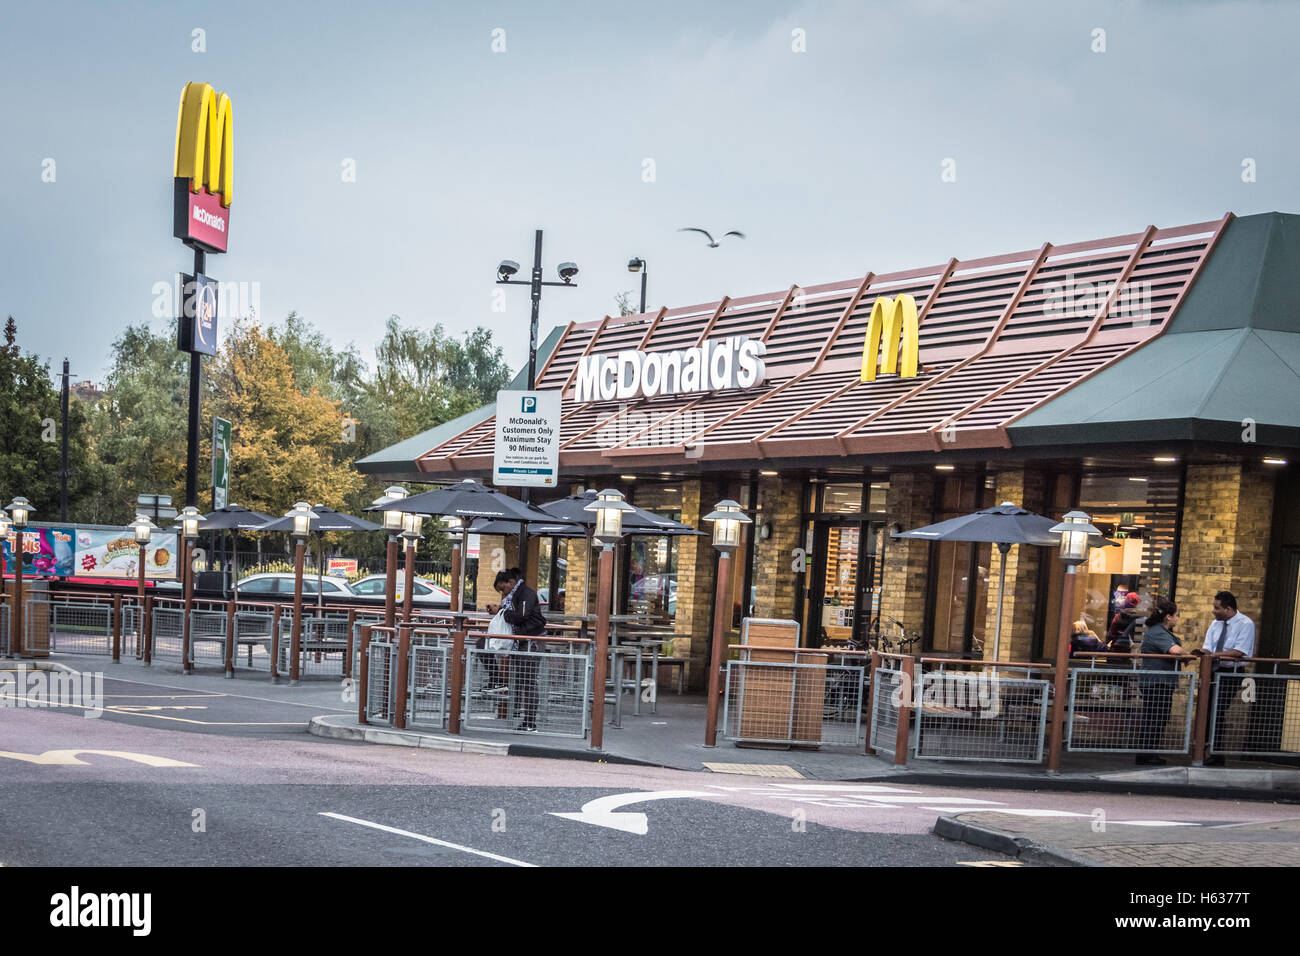 mcdonald 39 s drive through fast food restaurant in wandsworth london stock photo royalty free. Black Bedroom Furniture Sets. Home Design Ideas